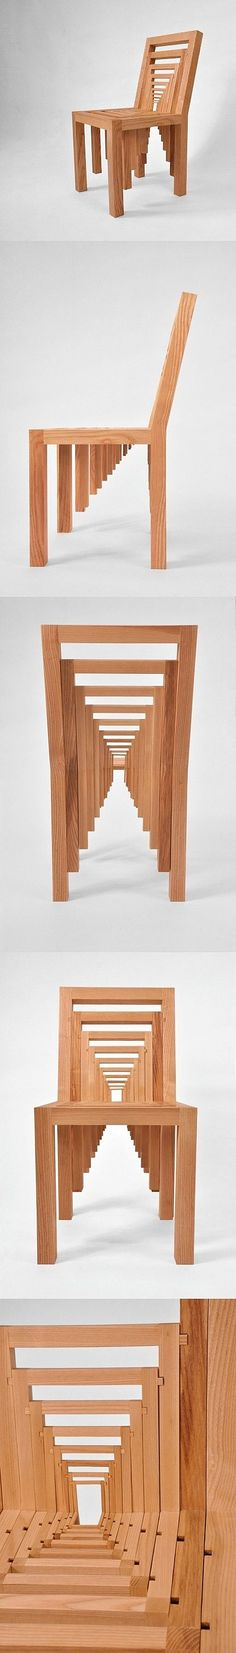 The infinite chair...Crazy but great. http://themetapicture.com/the-infinite-chair/